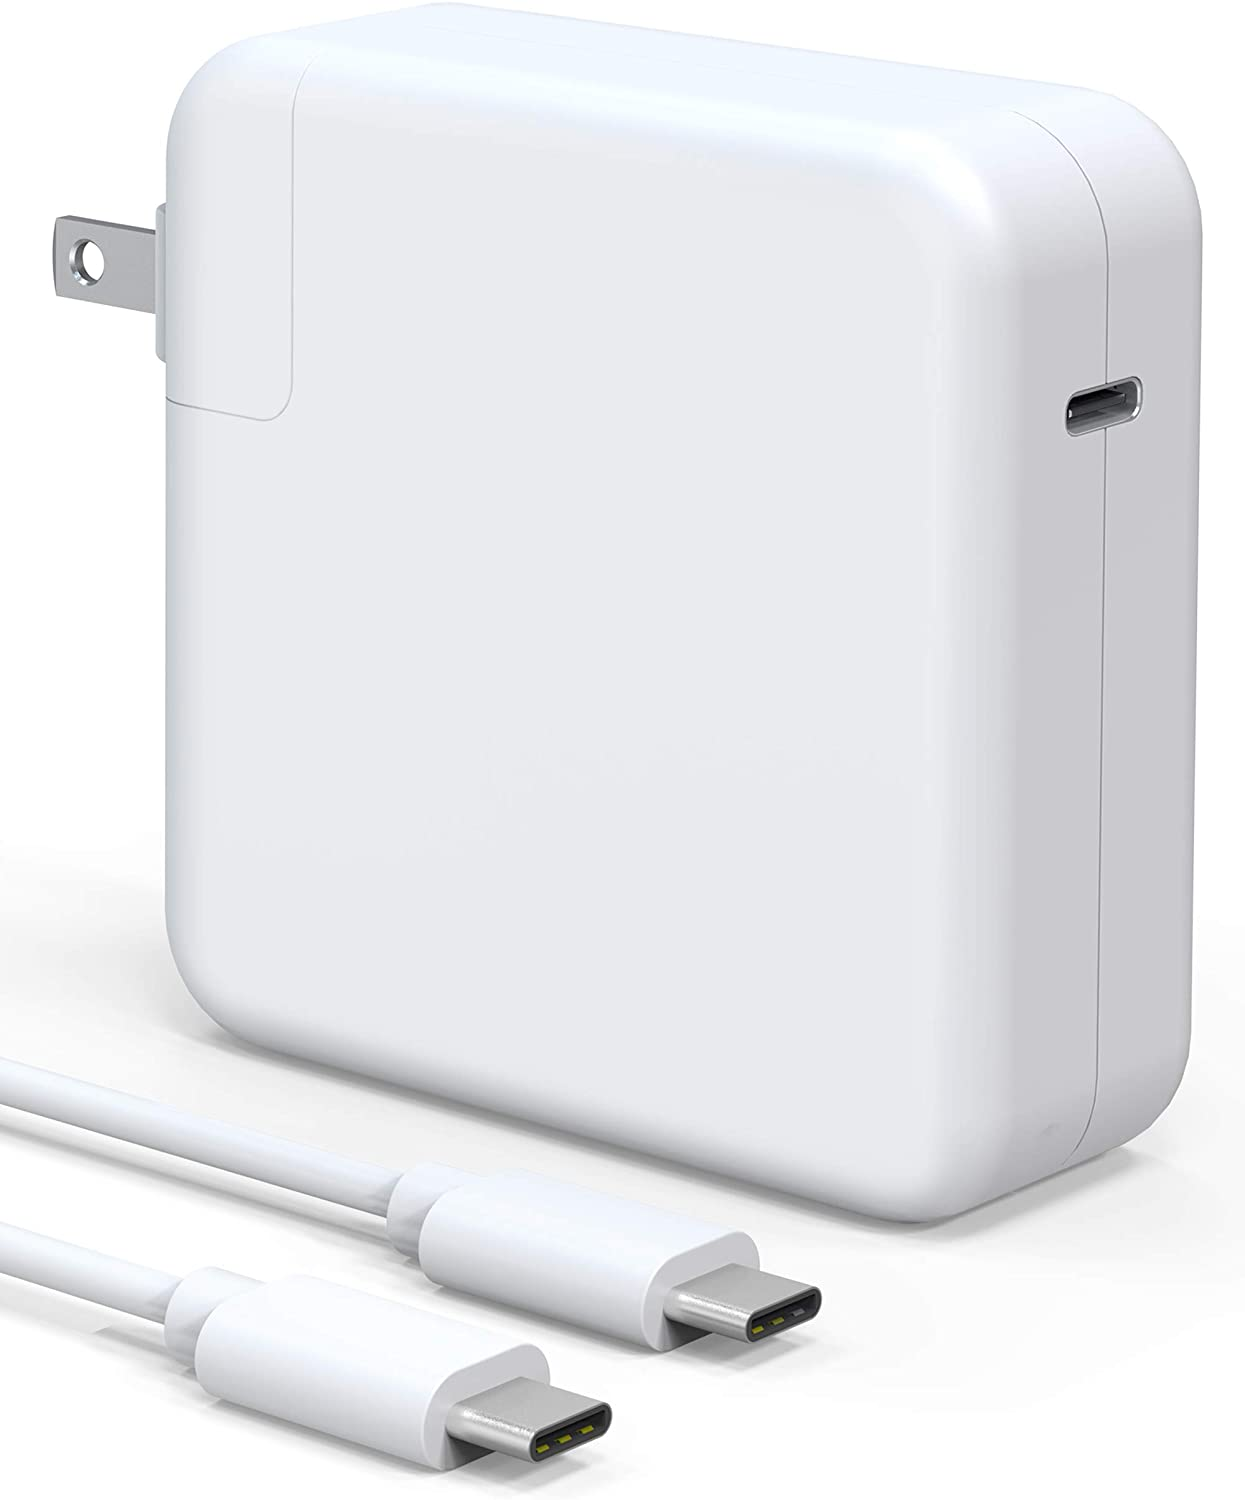 96W USB-C Power Adapter, Compatible with Macbook Pro & Air Charger, Works With USB C 96W & 87W & 61W & 30W & 29W PD Power Delivery Fast Charging For Macbook Pro 13 15 16 2016Late Mac Air 2018Late